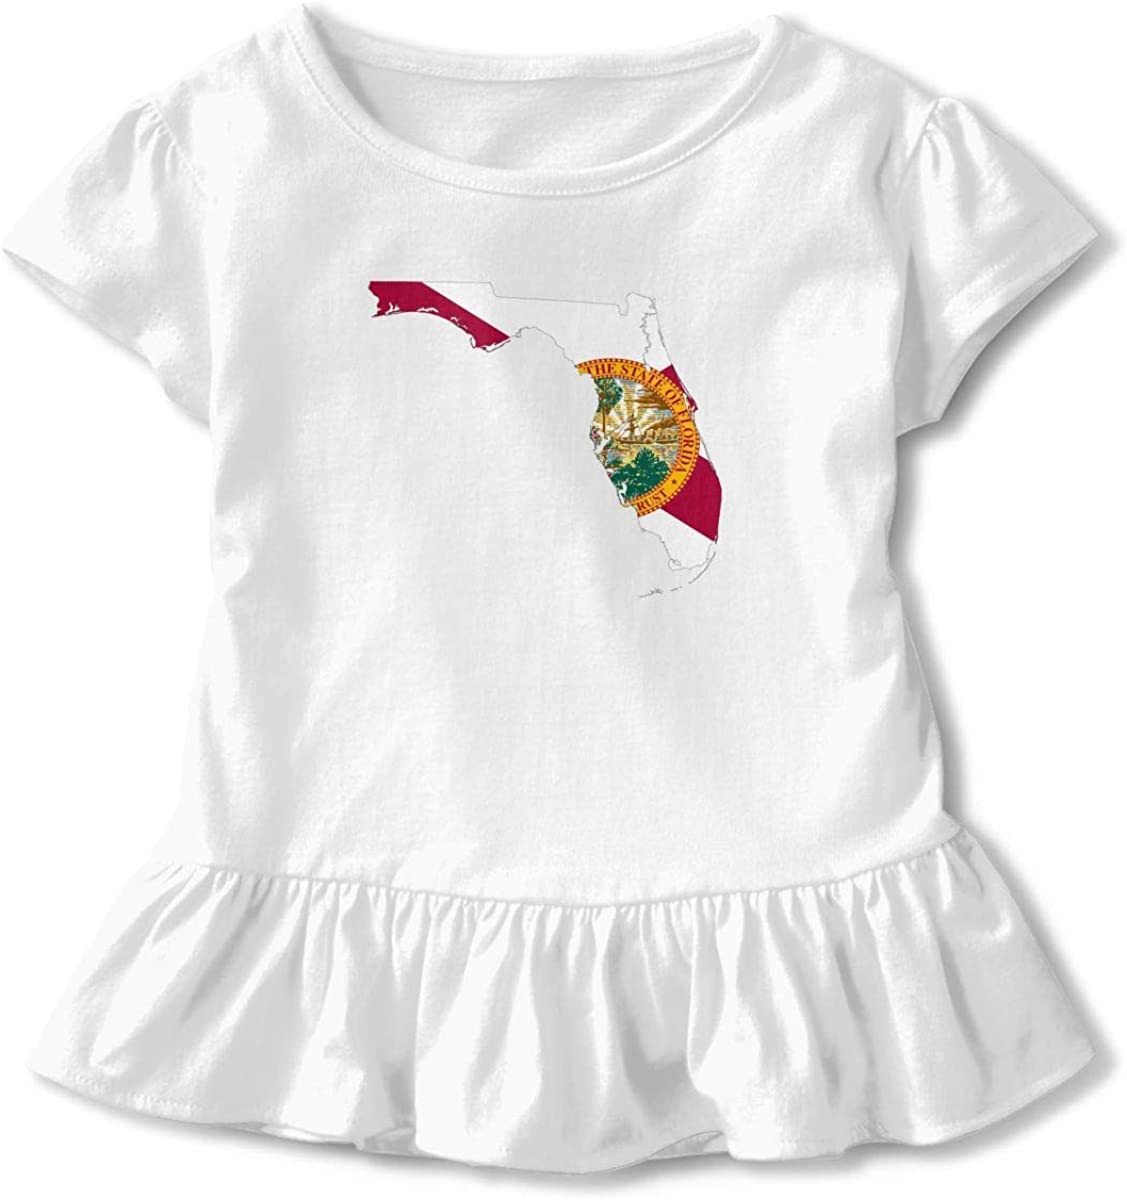 Toddler Baby Girl Firefighter Red Line Flag Funny Short Sleeve Cotton T Shirts Basic Tops Tee Clothes